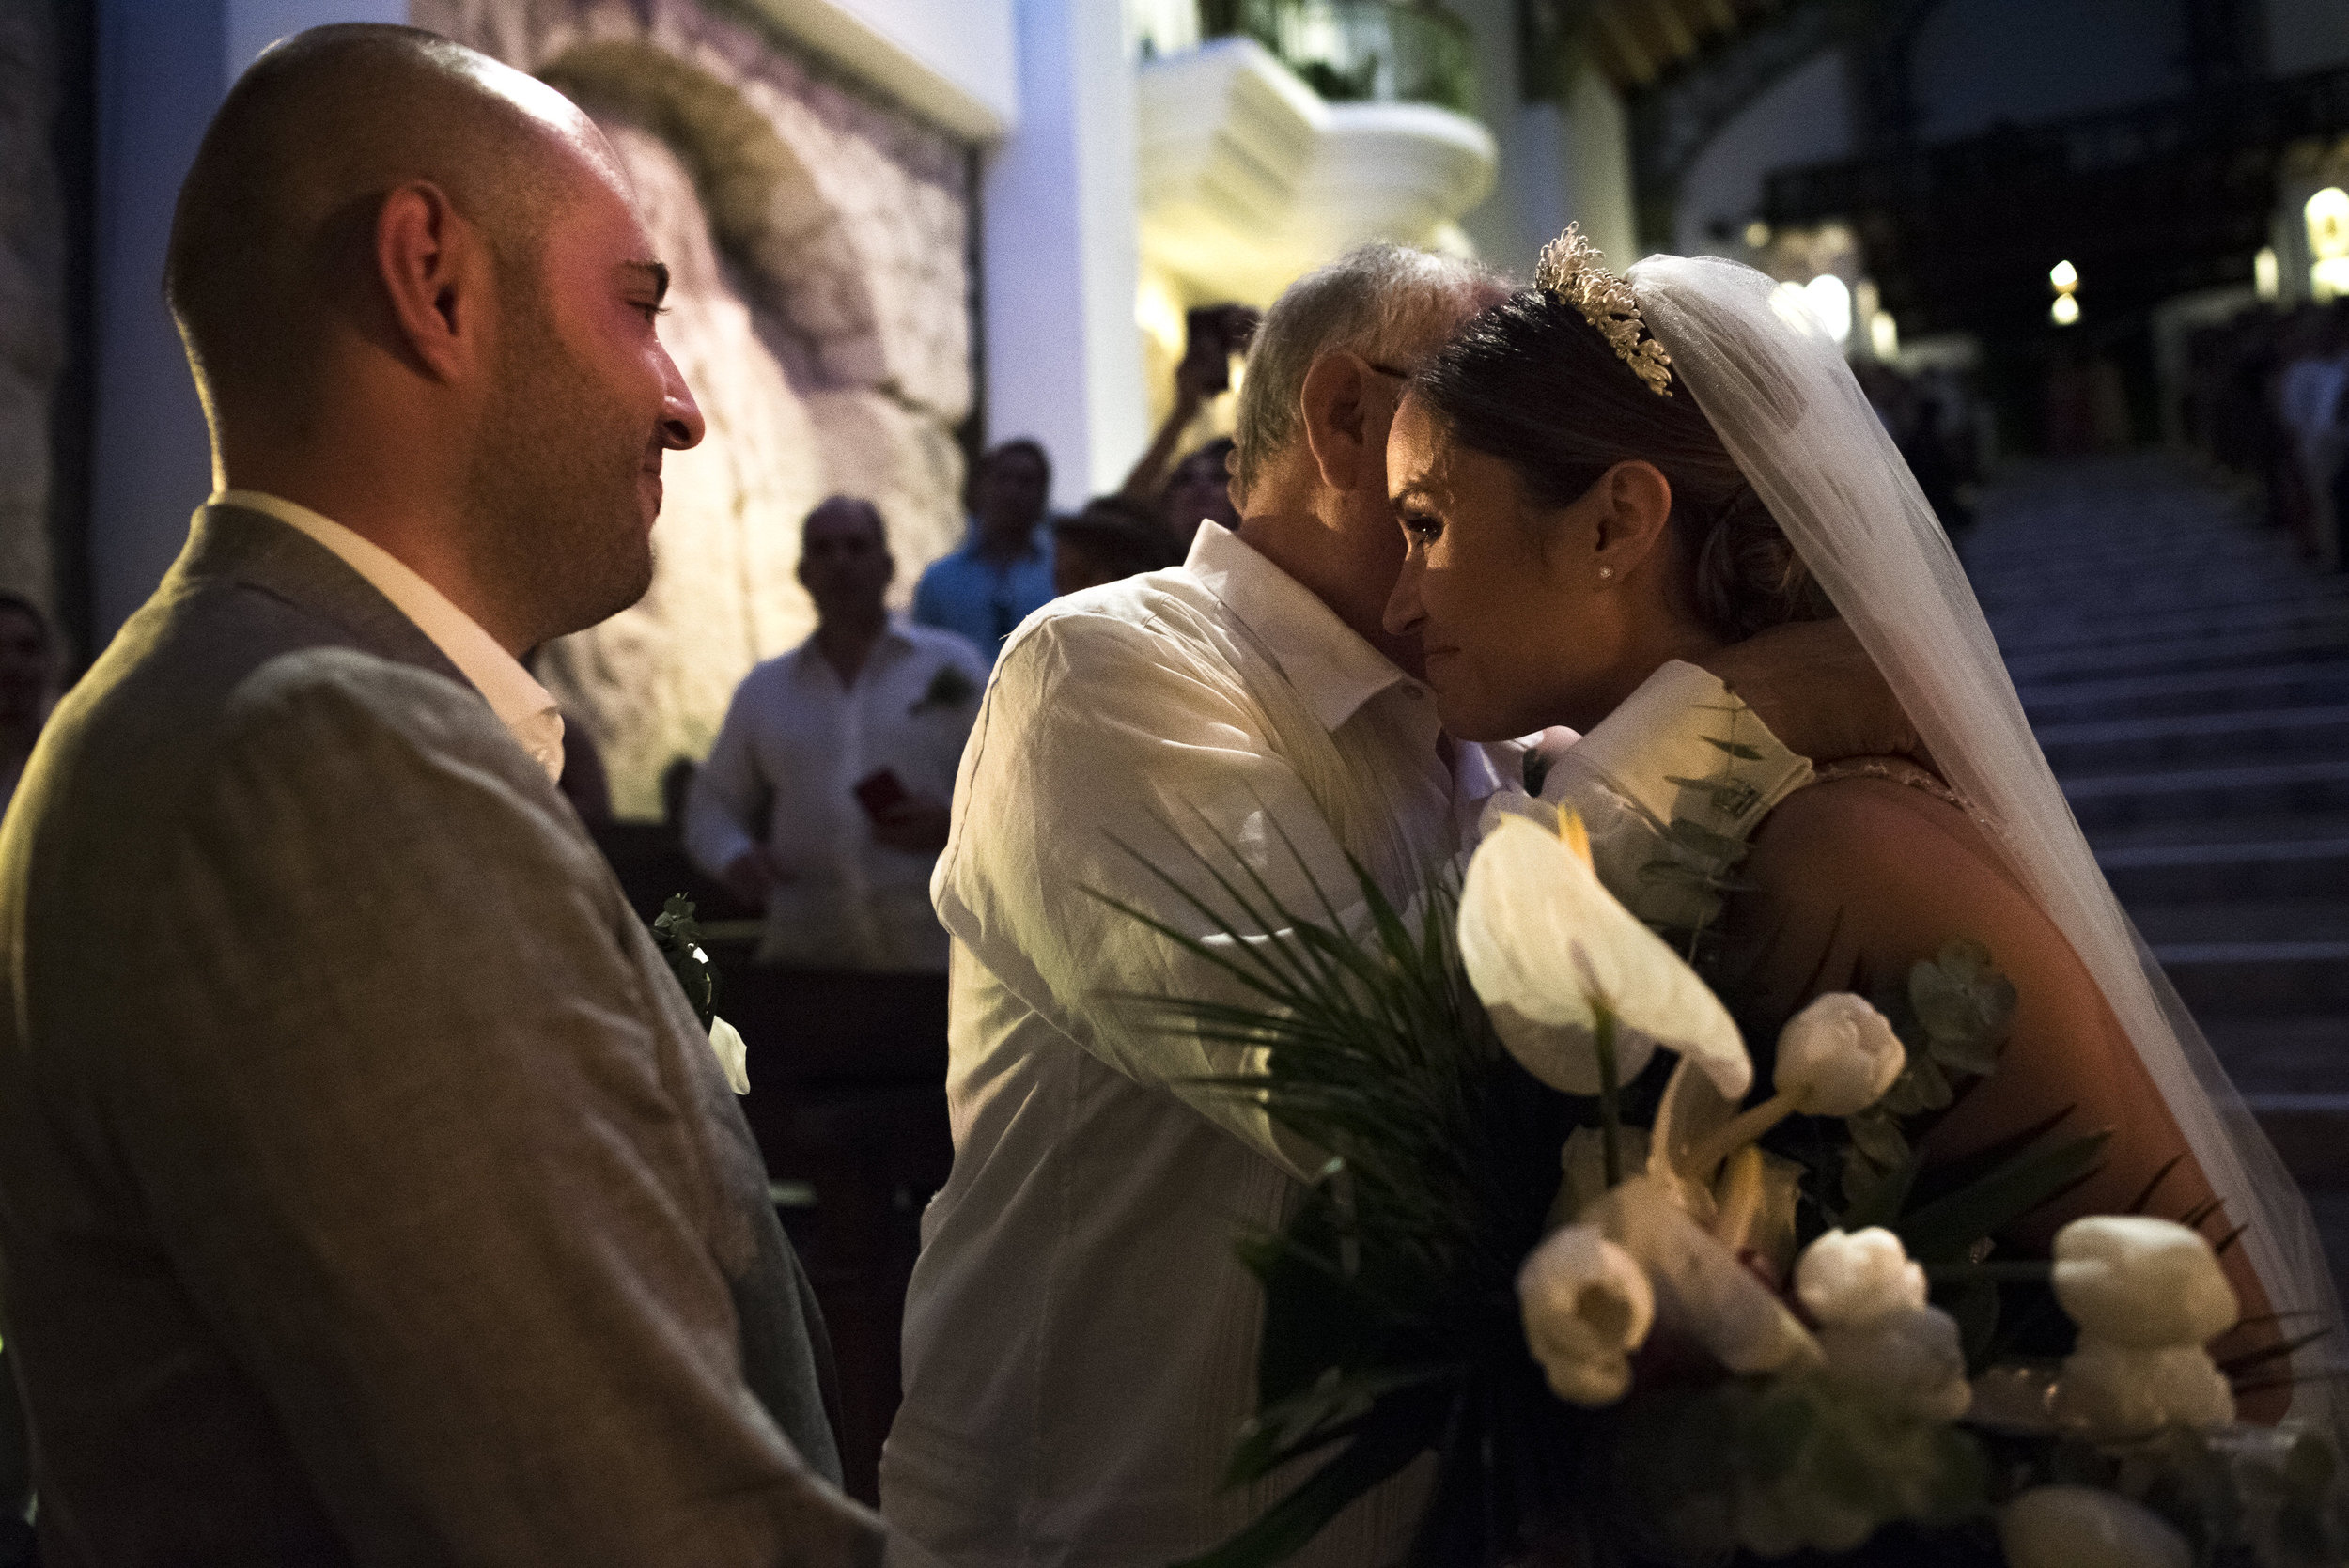 cancun_wedding_photographer_mexico (60).jpg